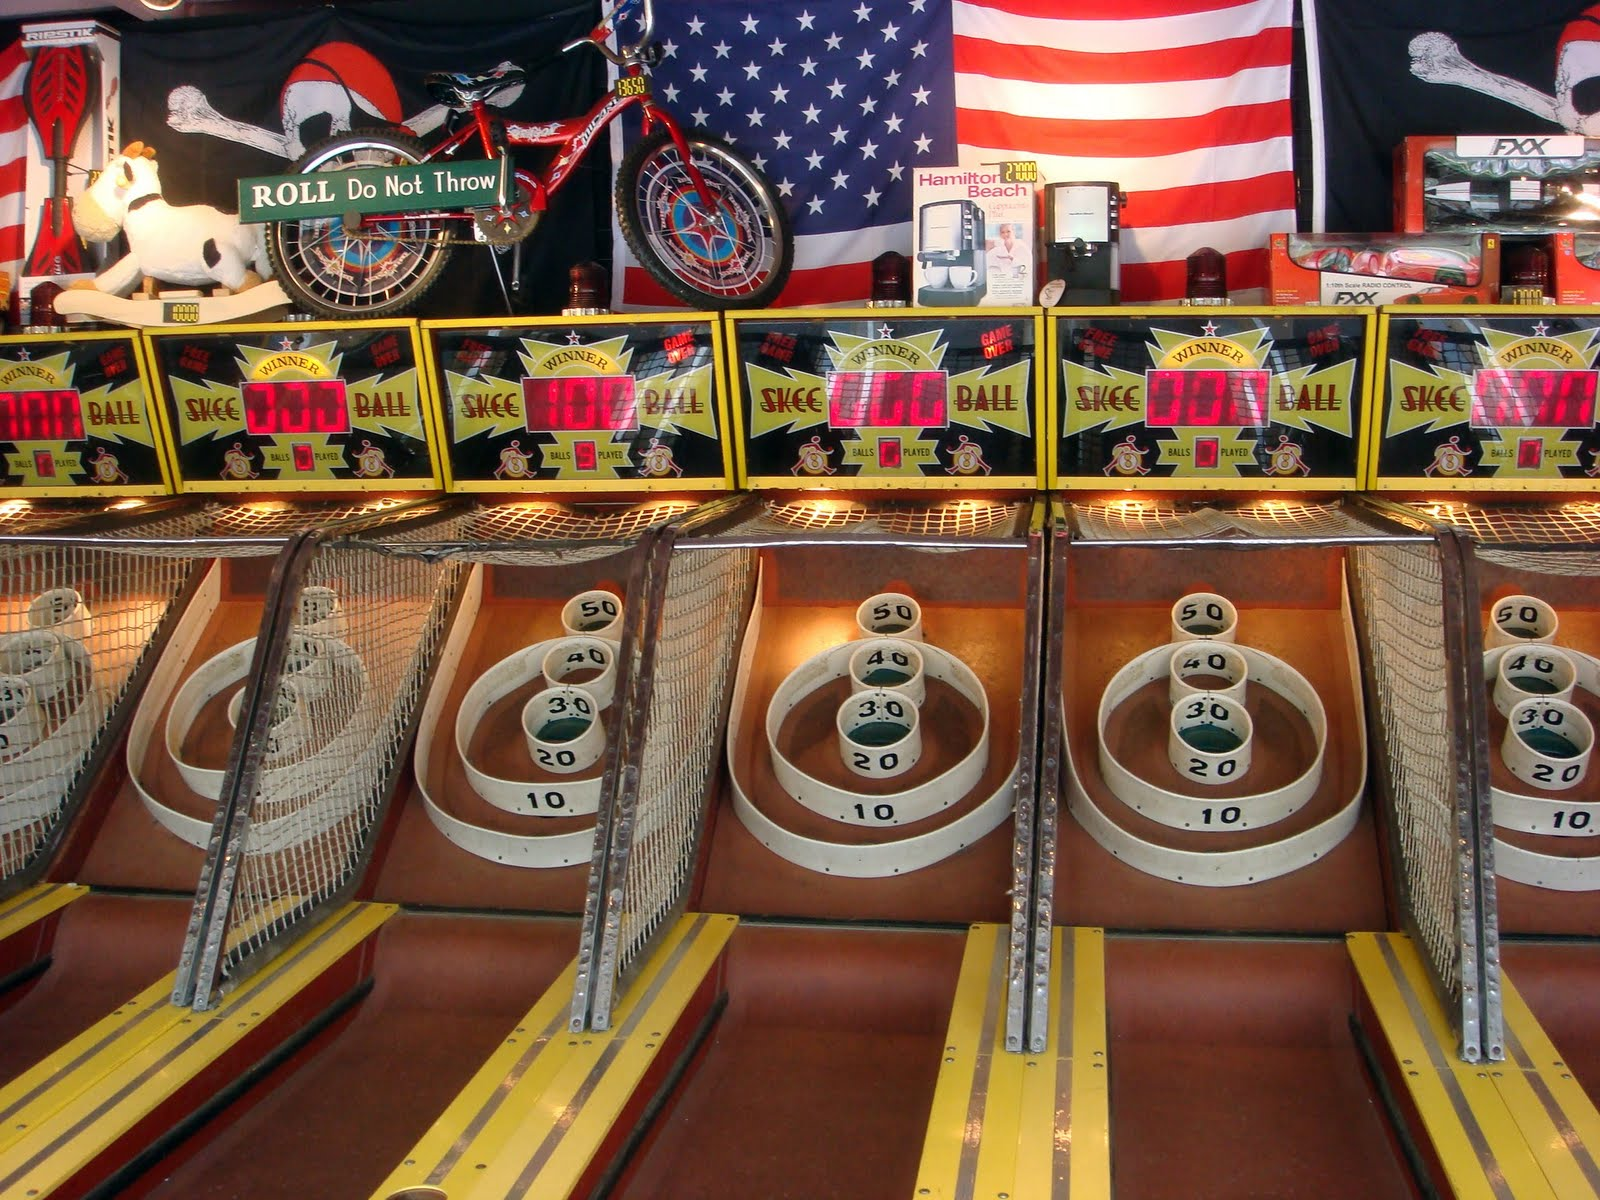 Handy Man, Crafty Woman: I Want a Skee Ball Lane in My House